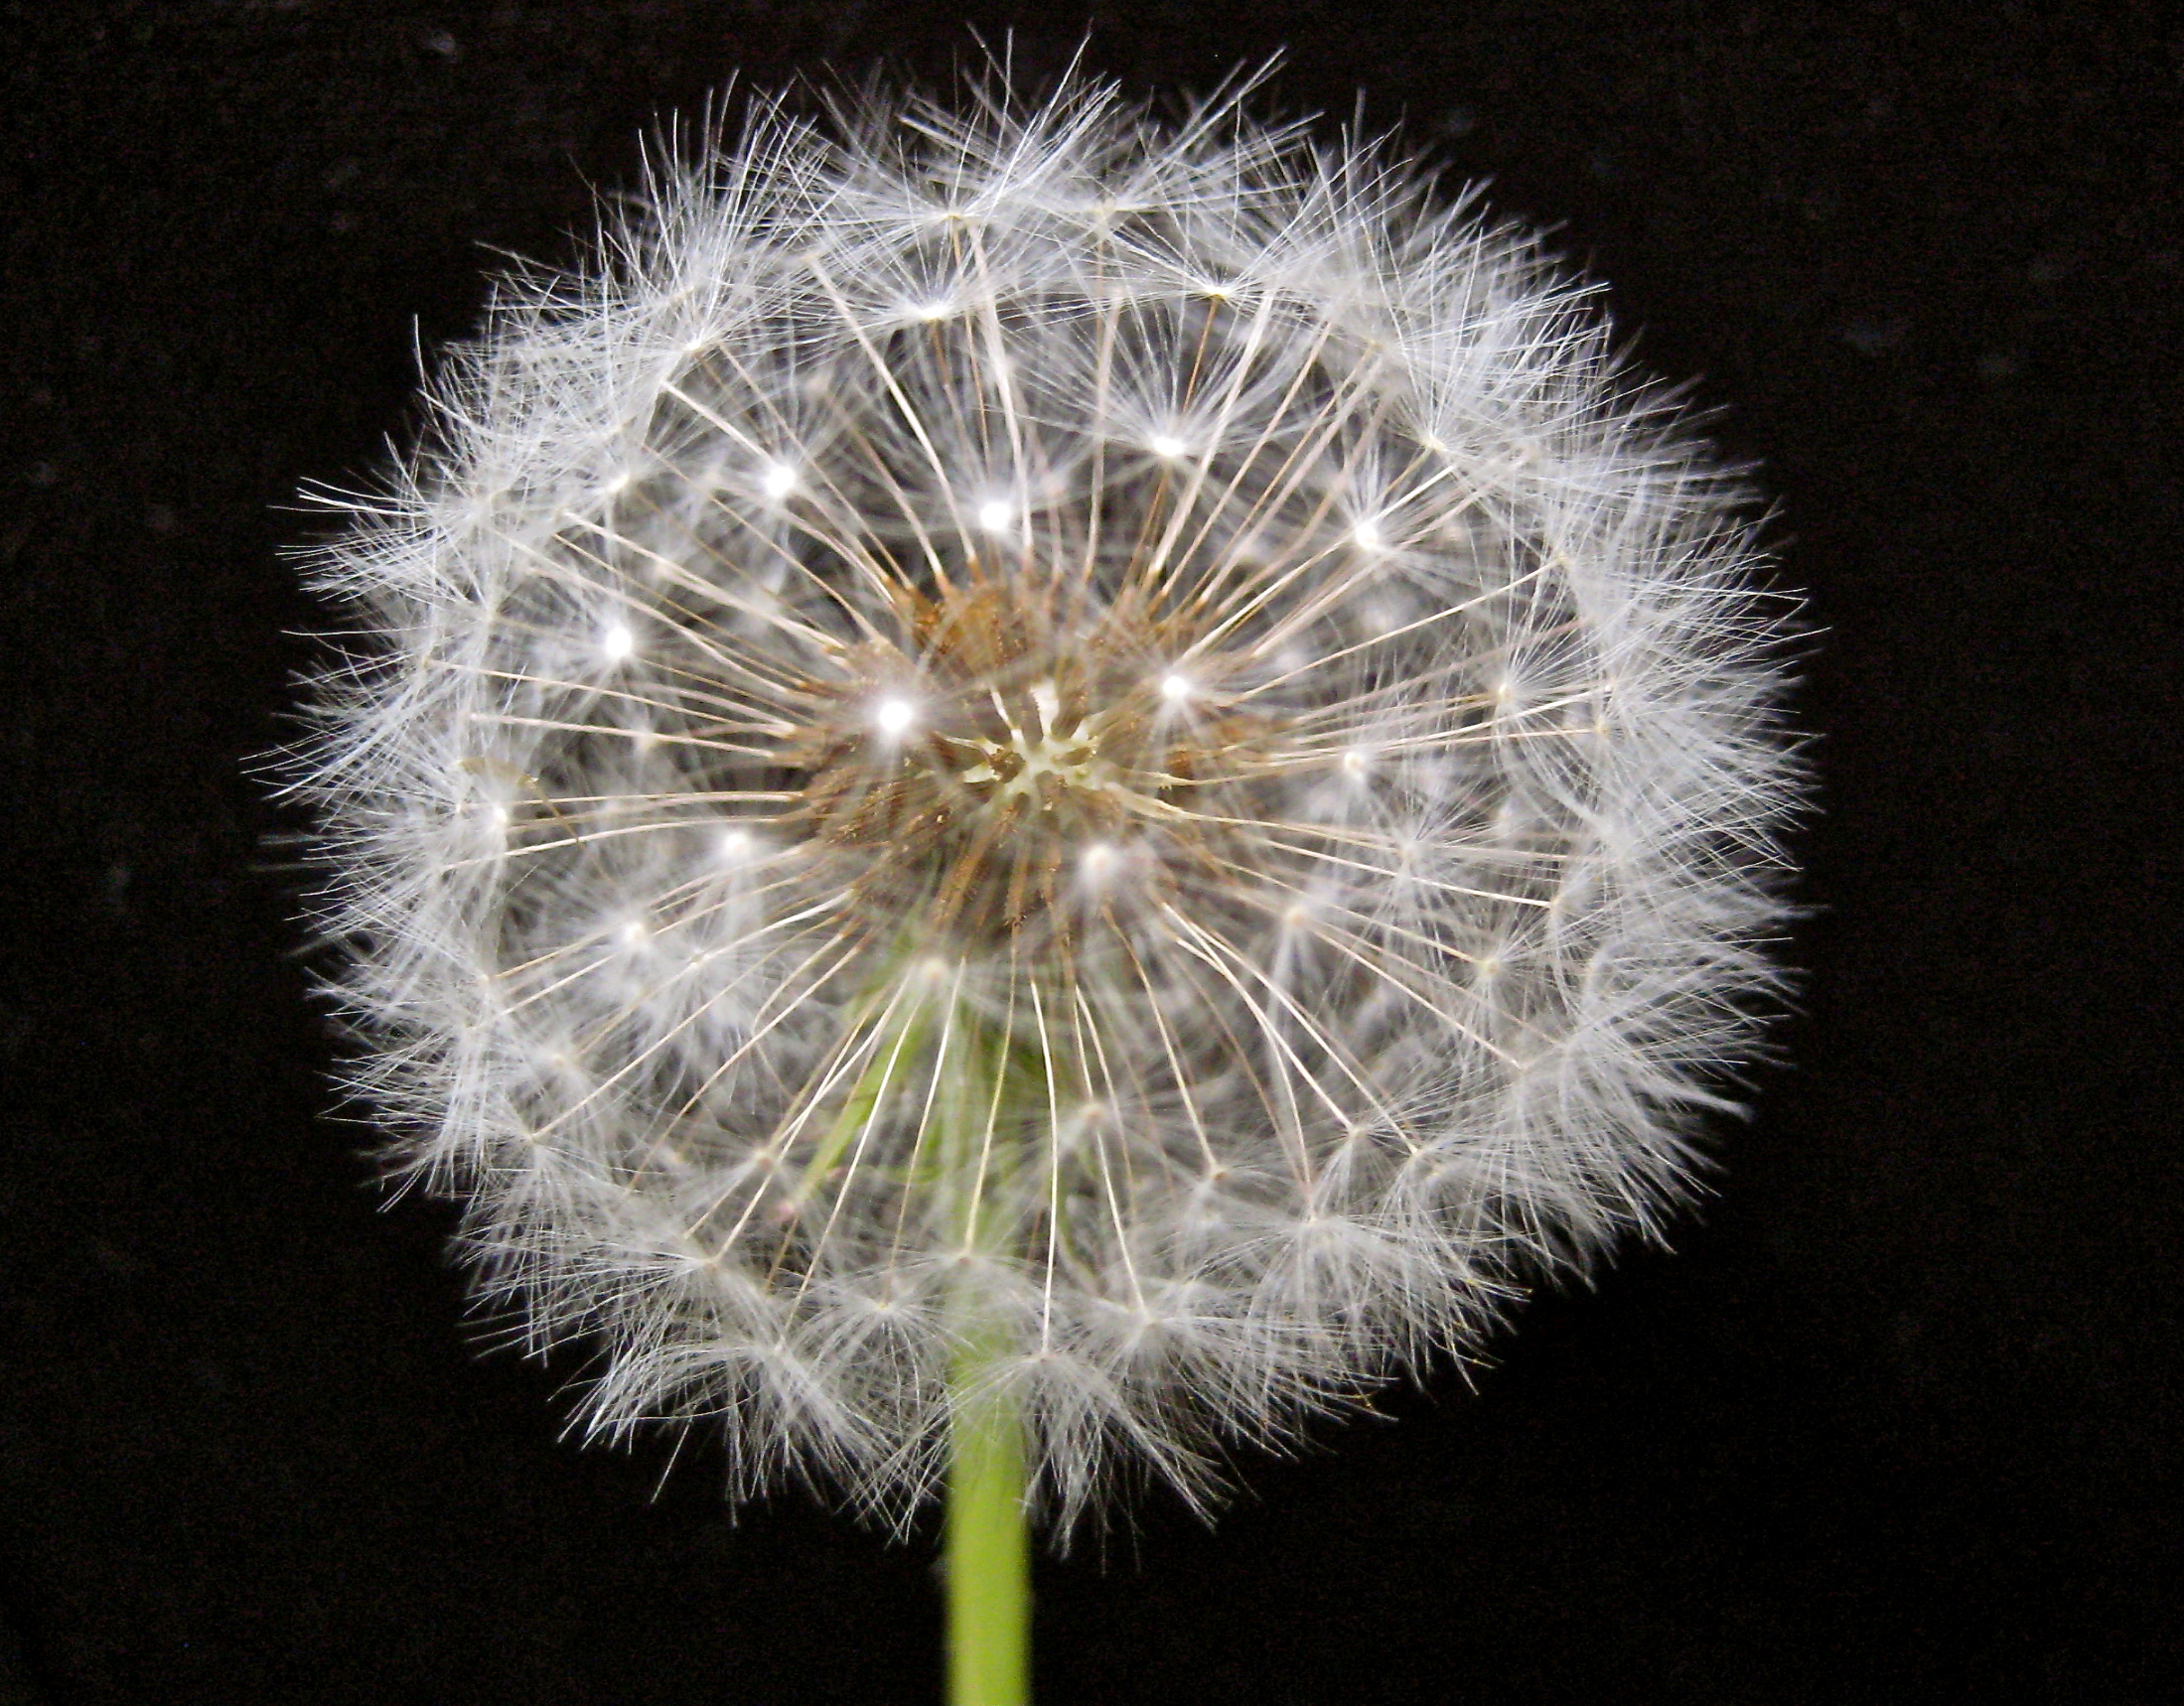 Glimpse of Solace: Dandelion wishes and other pics